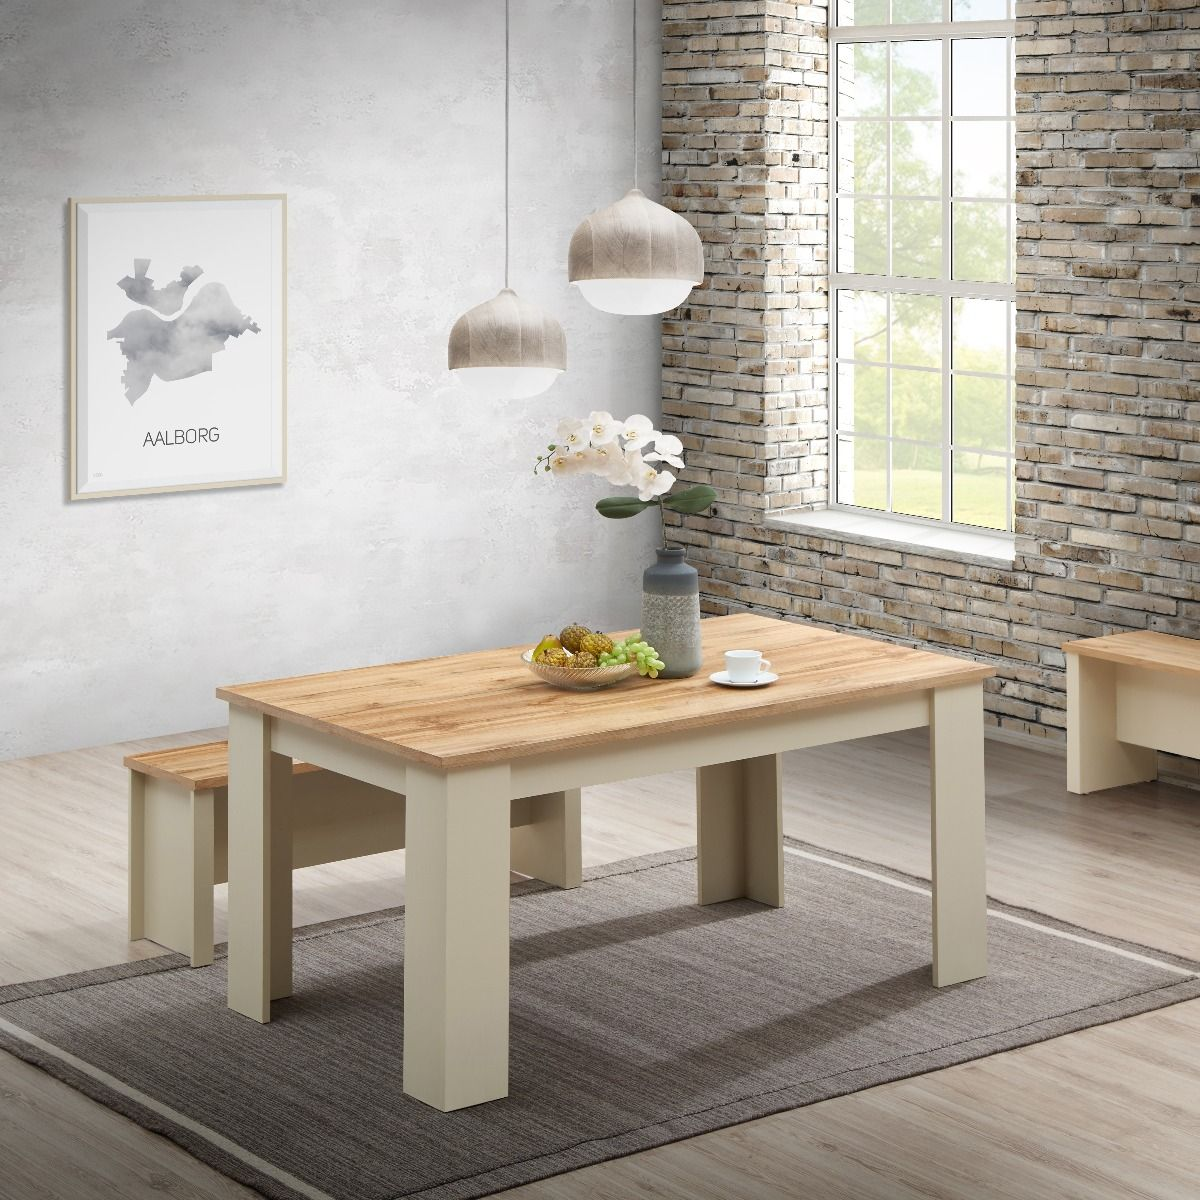 Dining Table 150 cm with 2 Benches 2 Stools Set